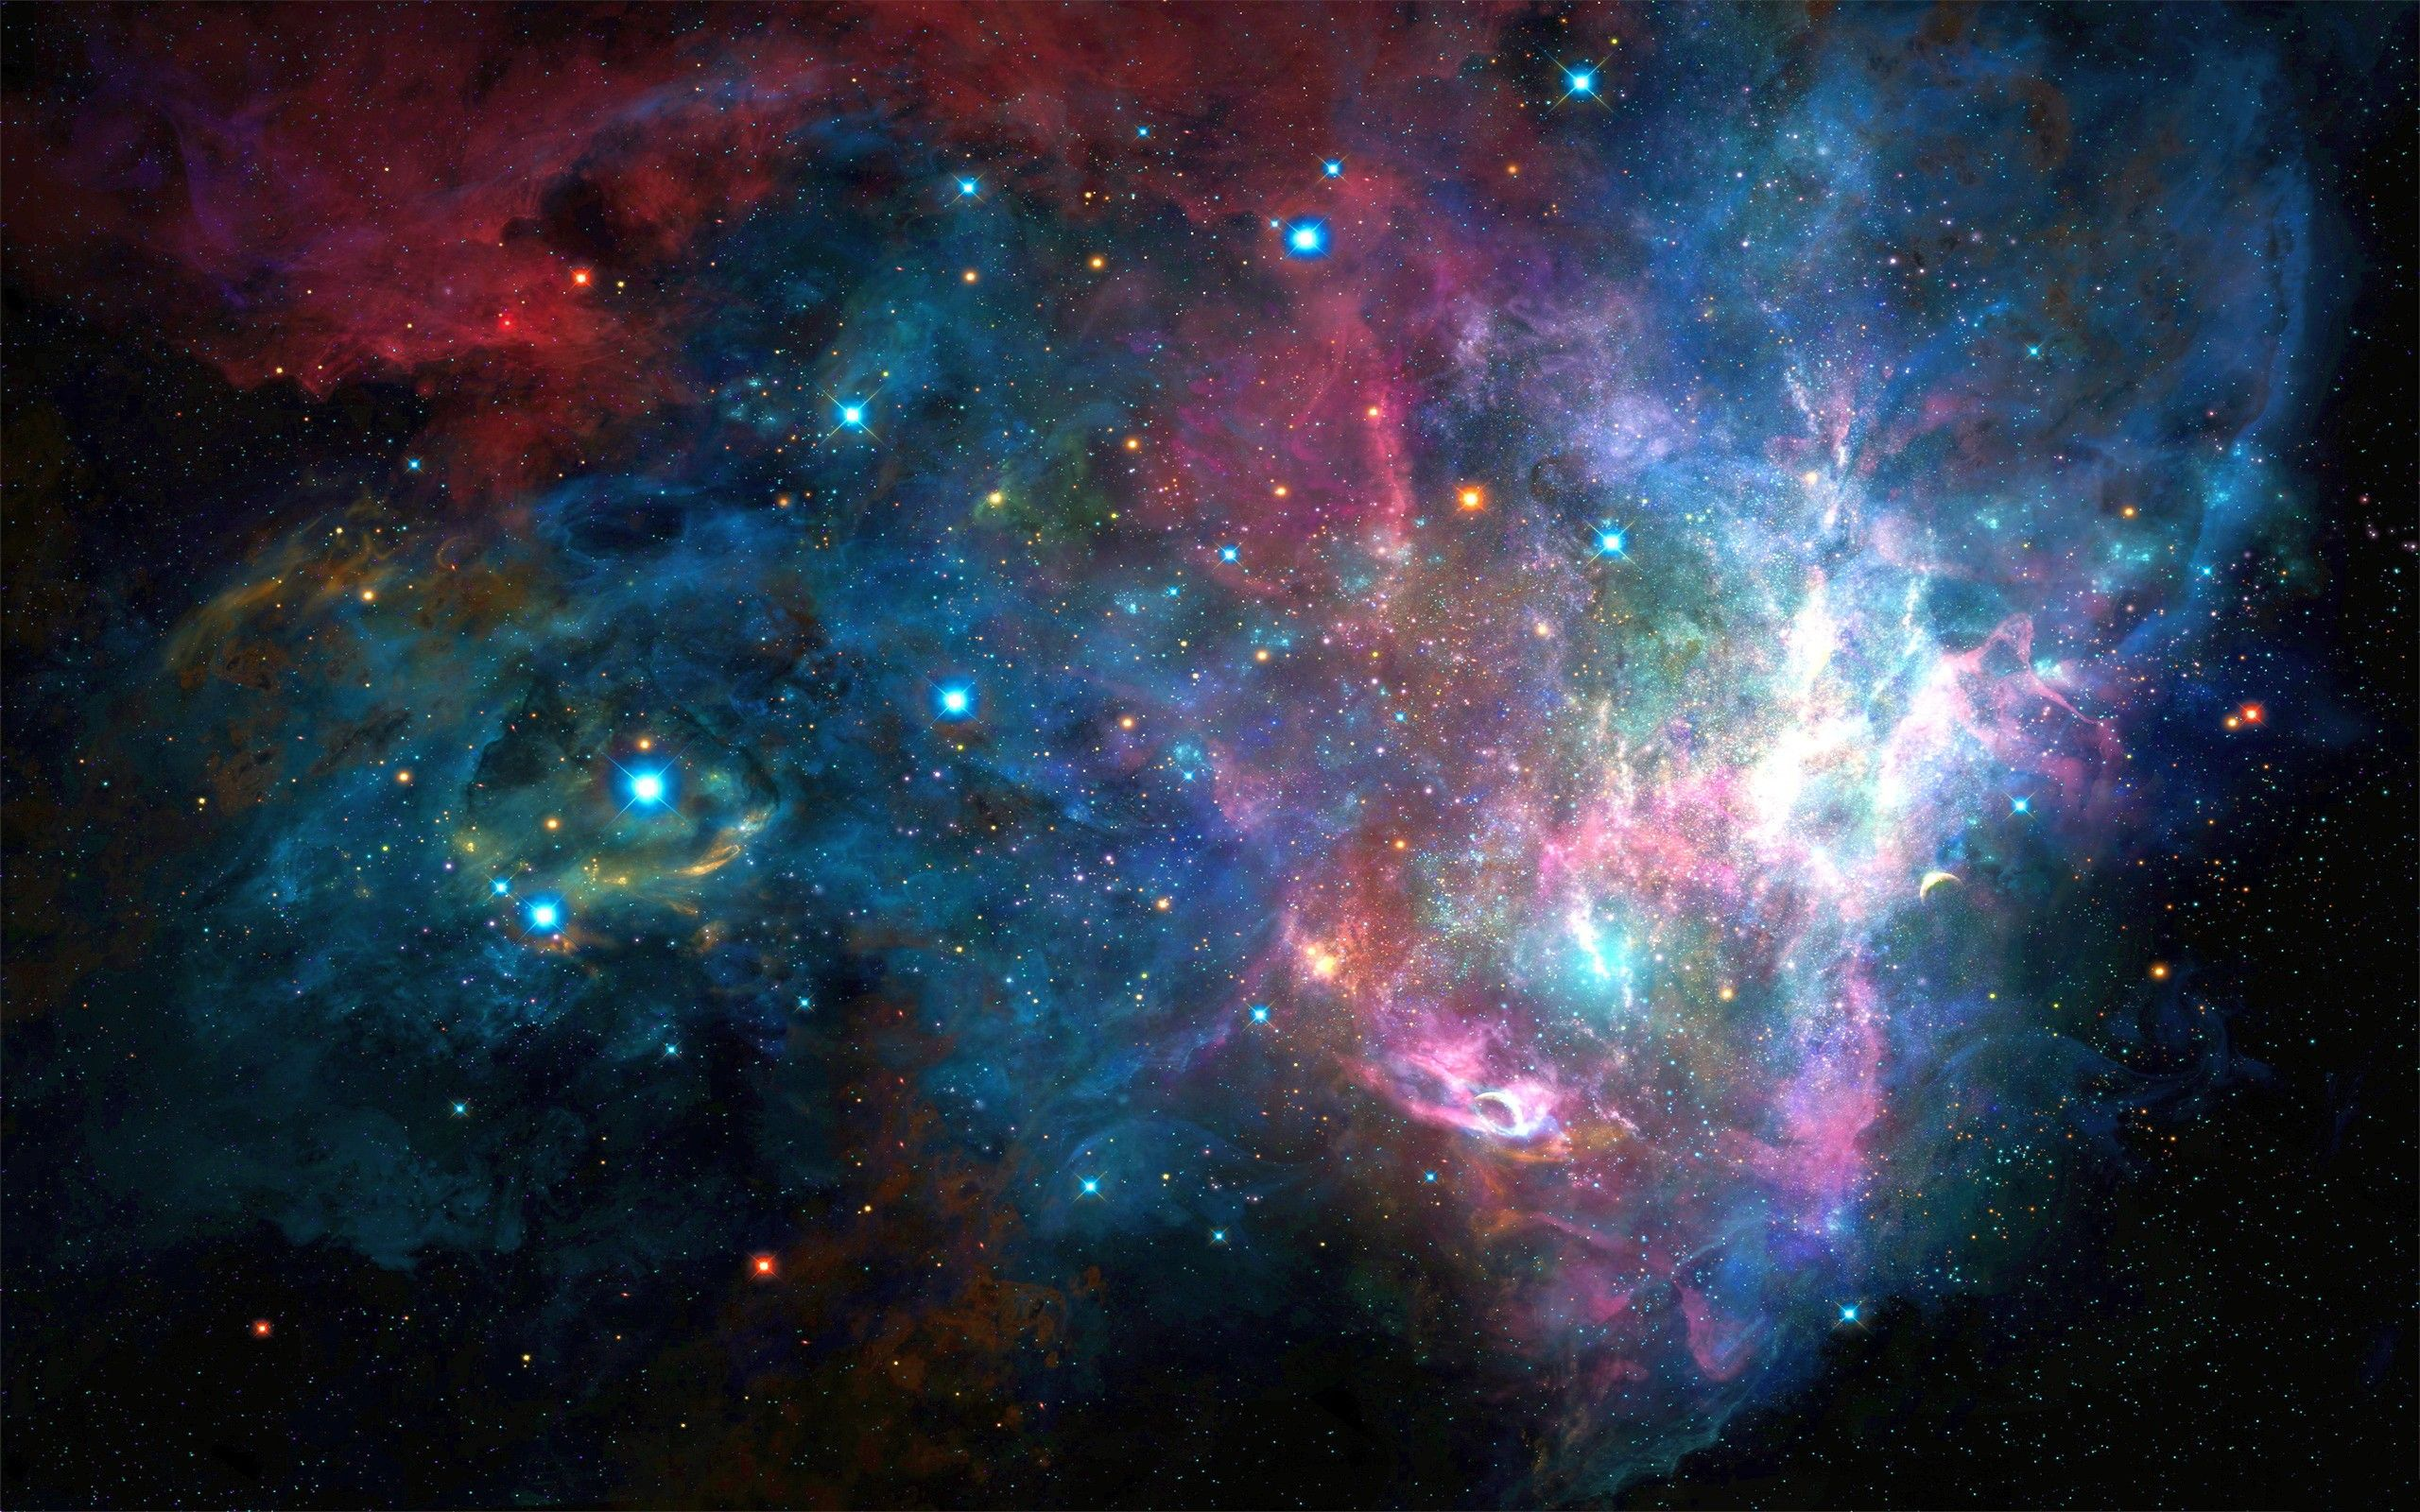 Space Galaxy Wallpapers Top Free Space Galaxy Backgrounds Wallpaperaccess